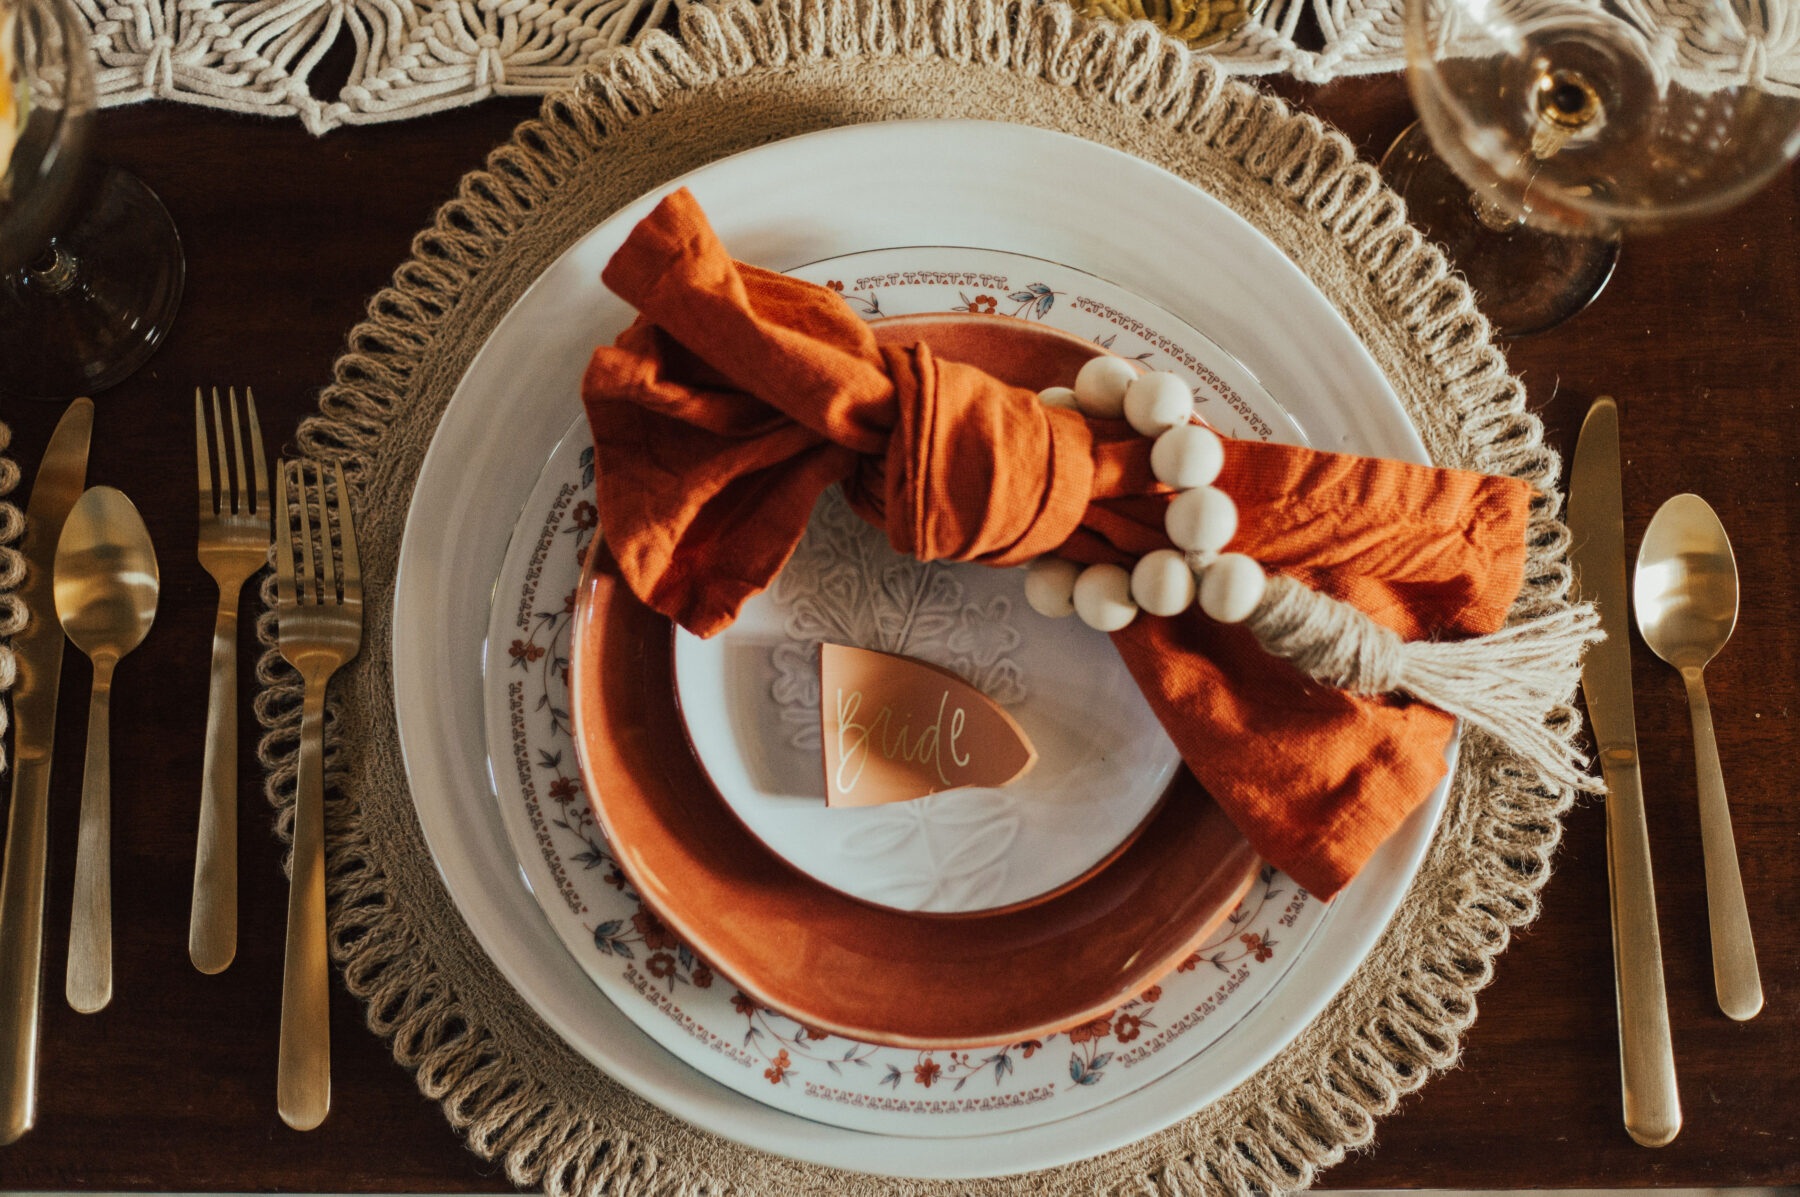 Orange boho wedding place setting: Bright Bohemian Photo Shoot from Ina J Designs